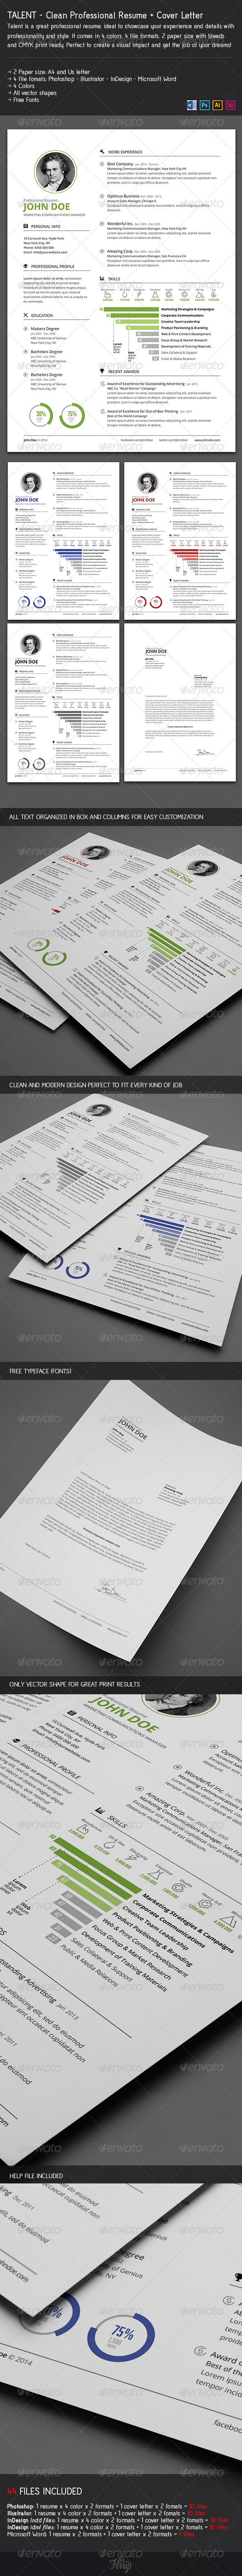 GraphicRiver Clean Resume & Cover Letter 7027613